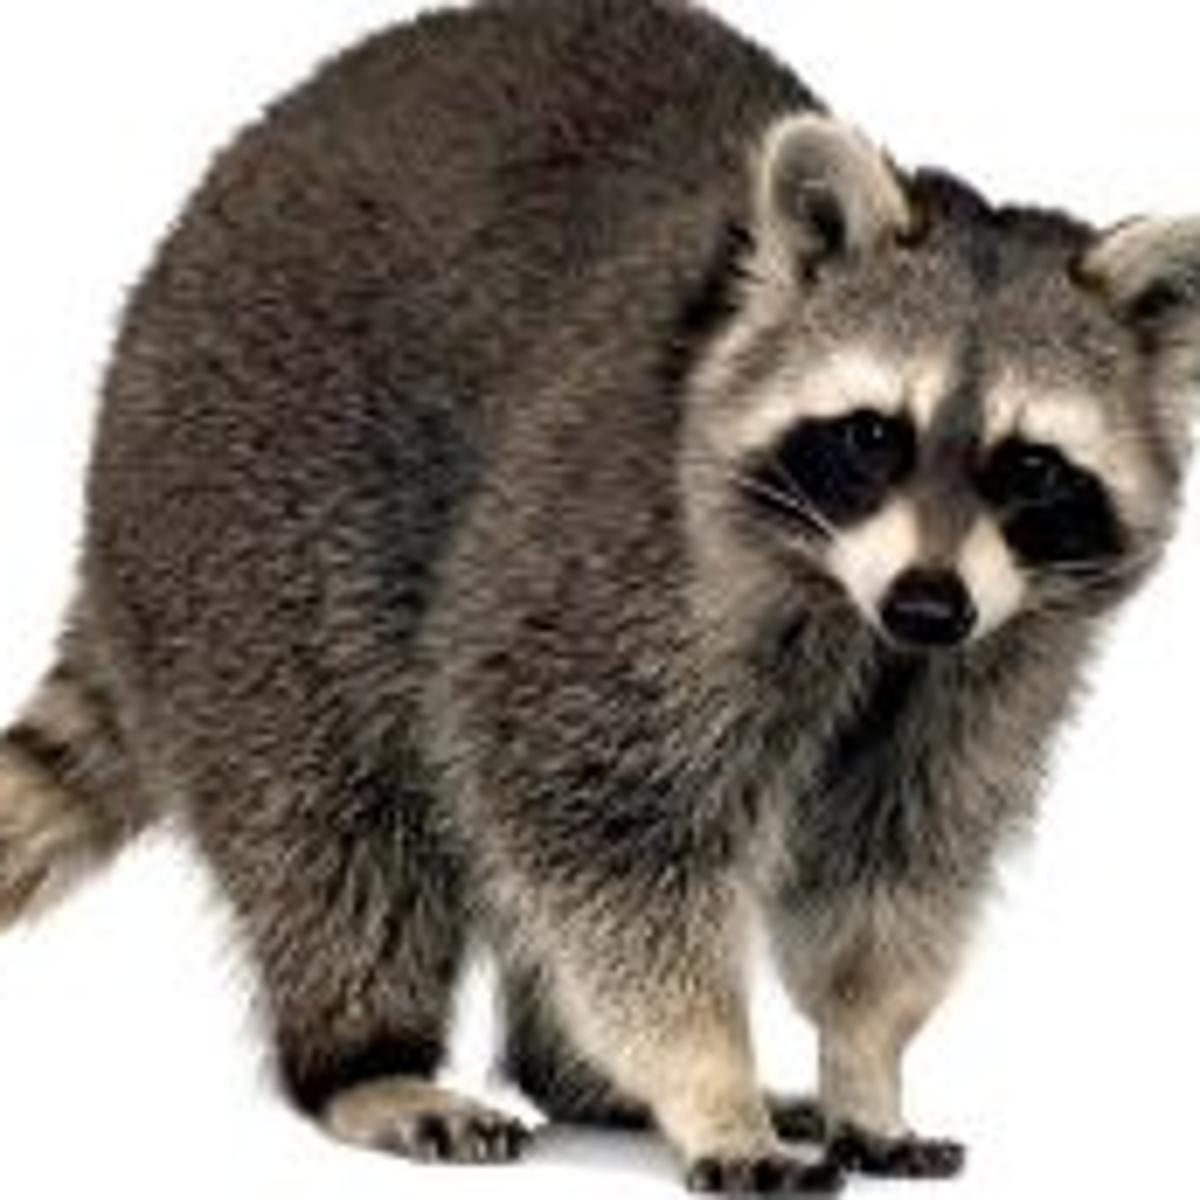 1160e9239f Raccoons own a stunning array of skills and a non-negotiable place ...